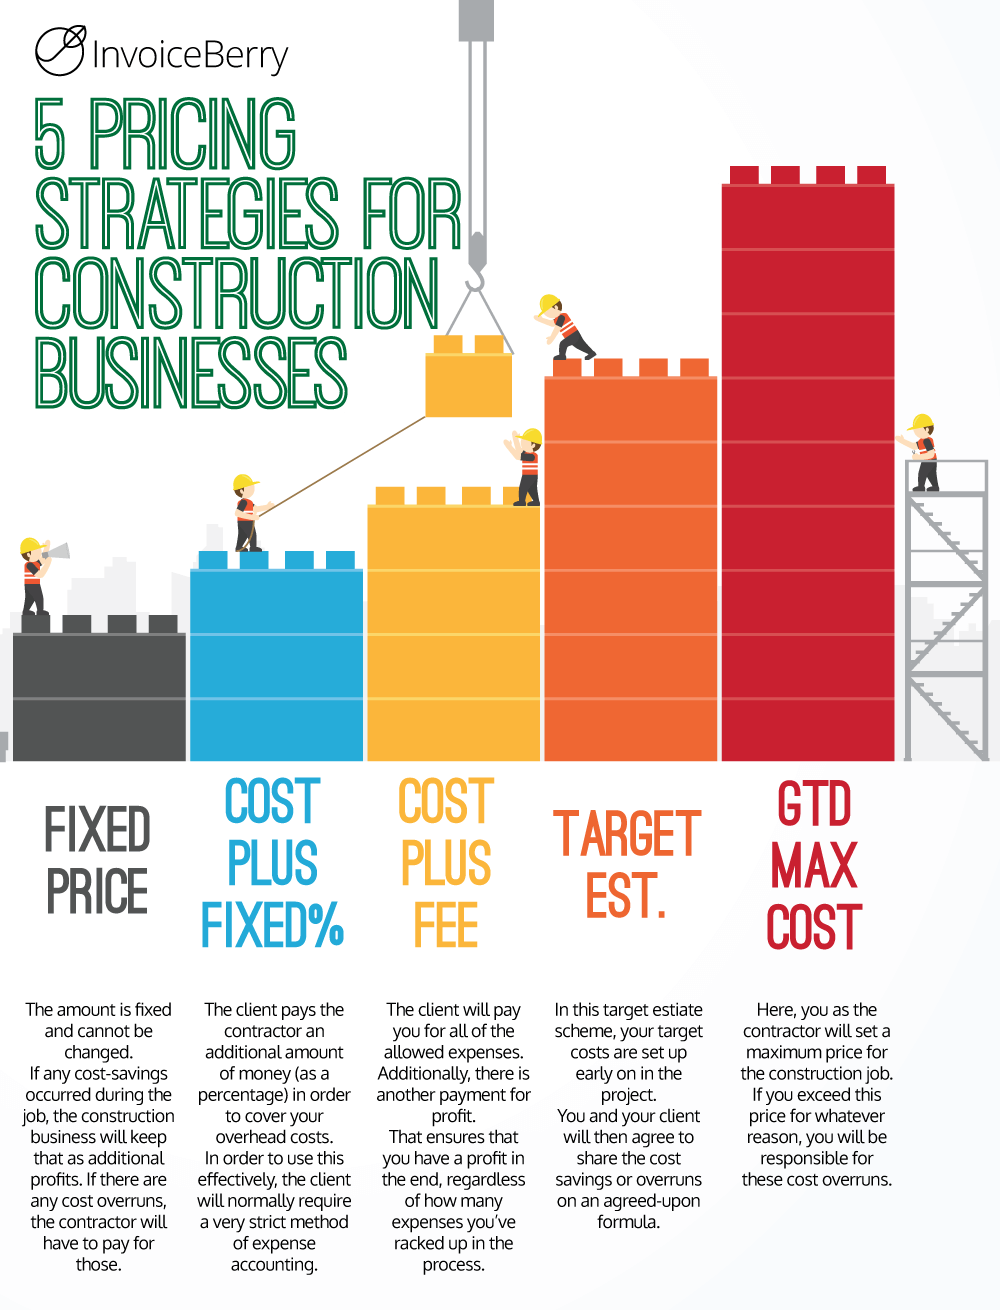 These are the most common pricing strategies for the average construction business